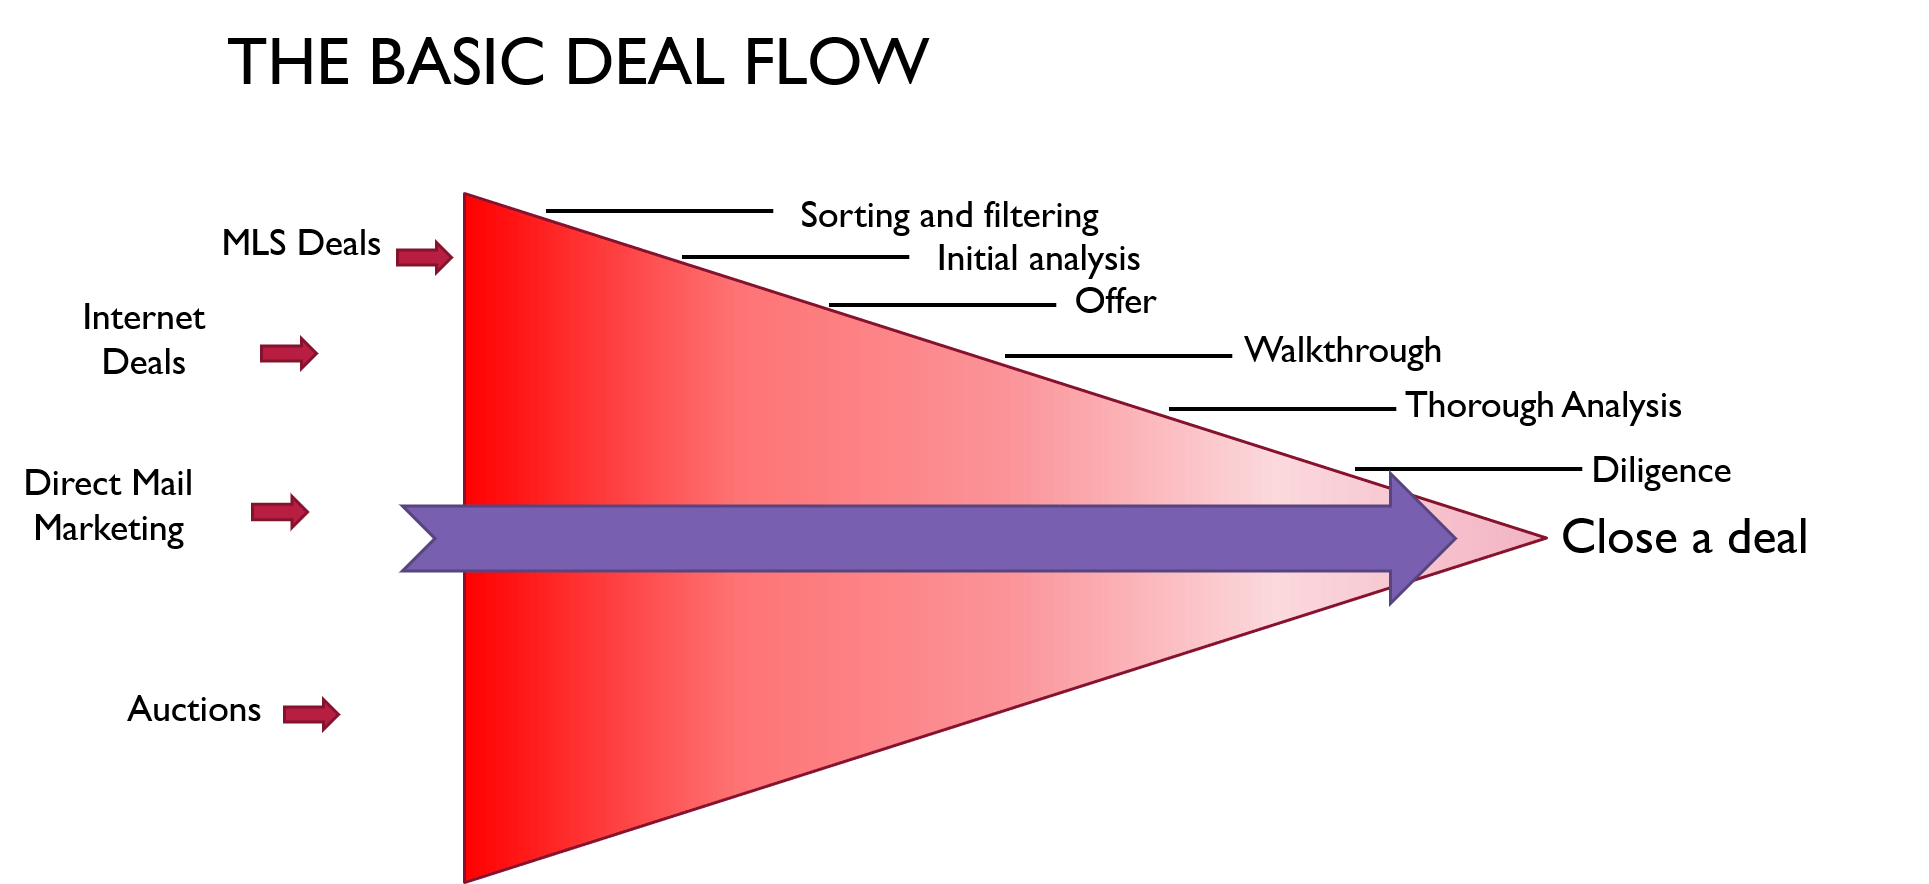 wholesaling deal pipeline